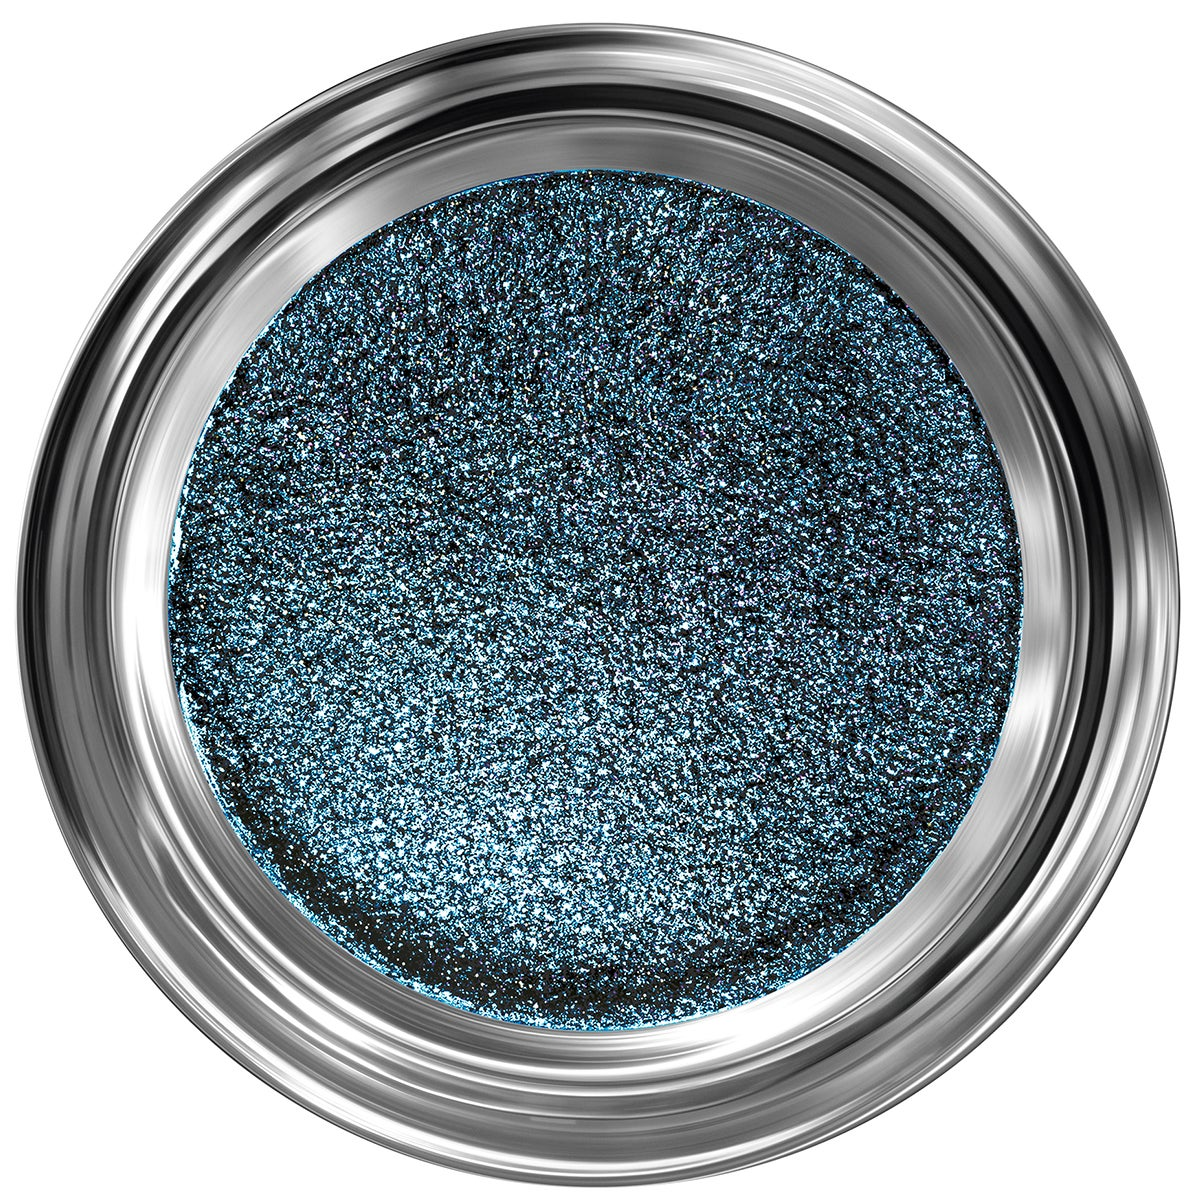 Giorgio Armani Eyes To Kill Stellar Eyeshadow